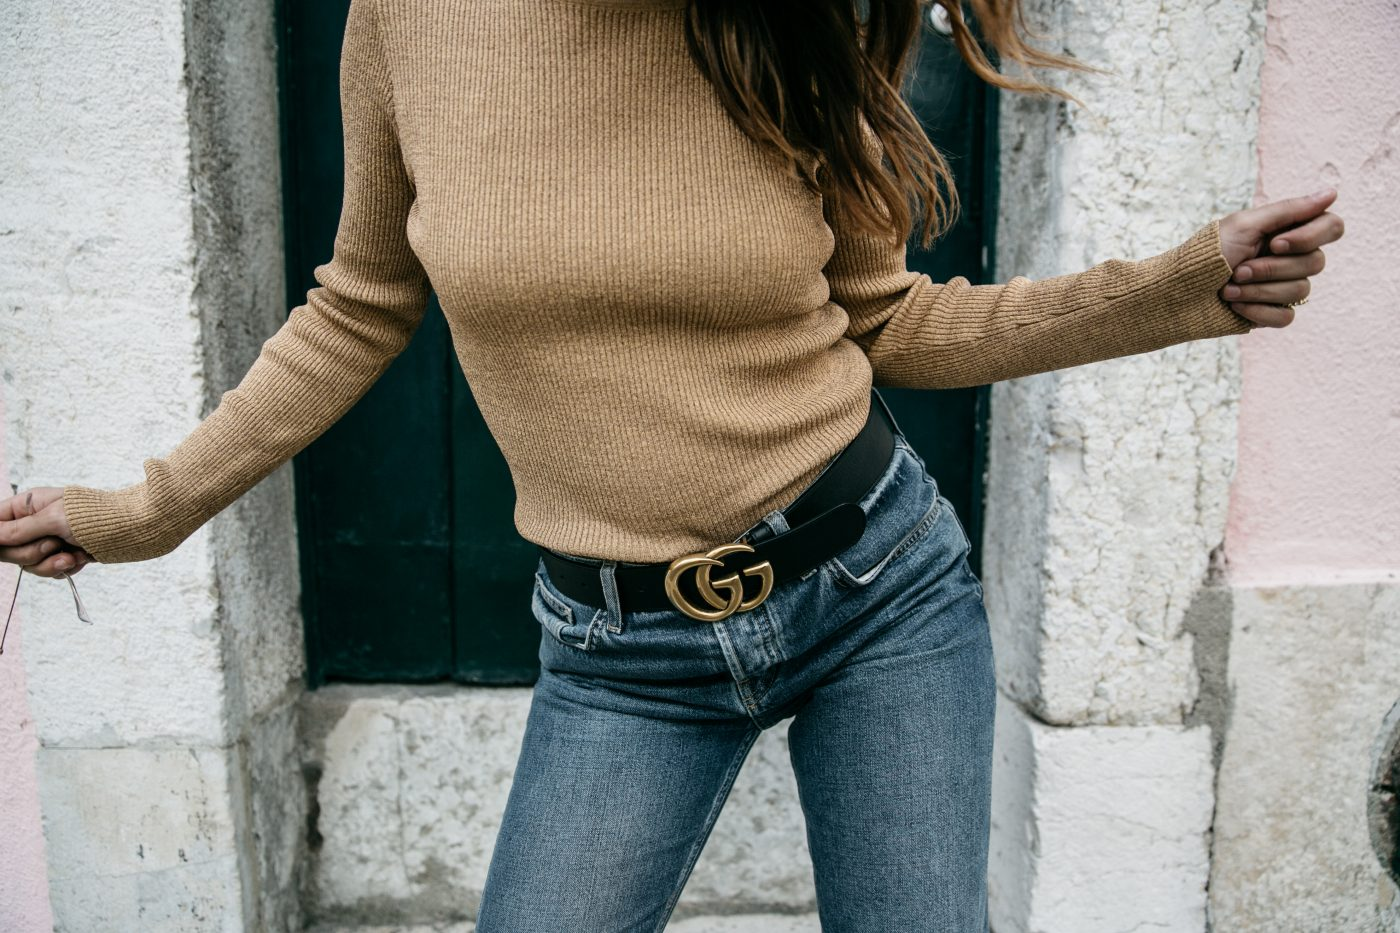 Metallic_Sweater-Cameo_The_Label-Melie-Lisboa-Denim-Topshop-Gucci_Belt-Saint_Laurent_Sneakers-Outfit-Street_Style-66